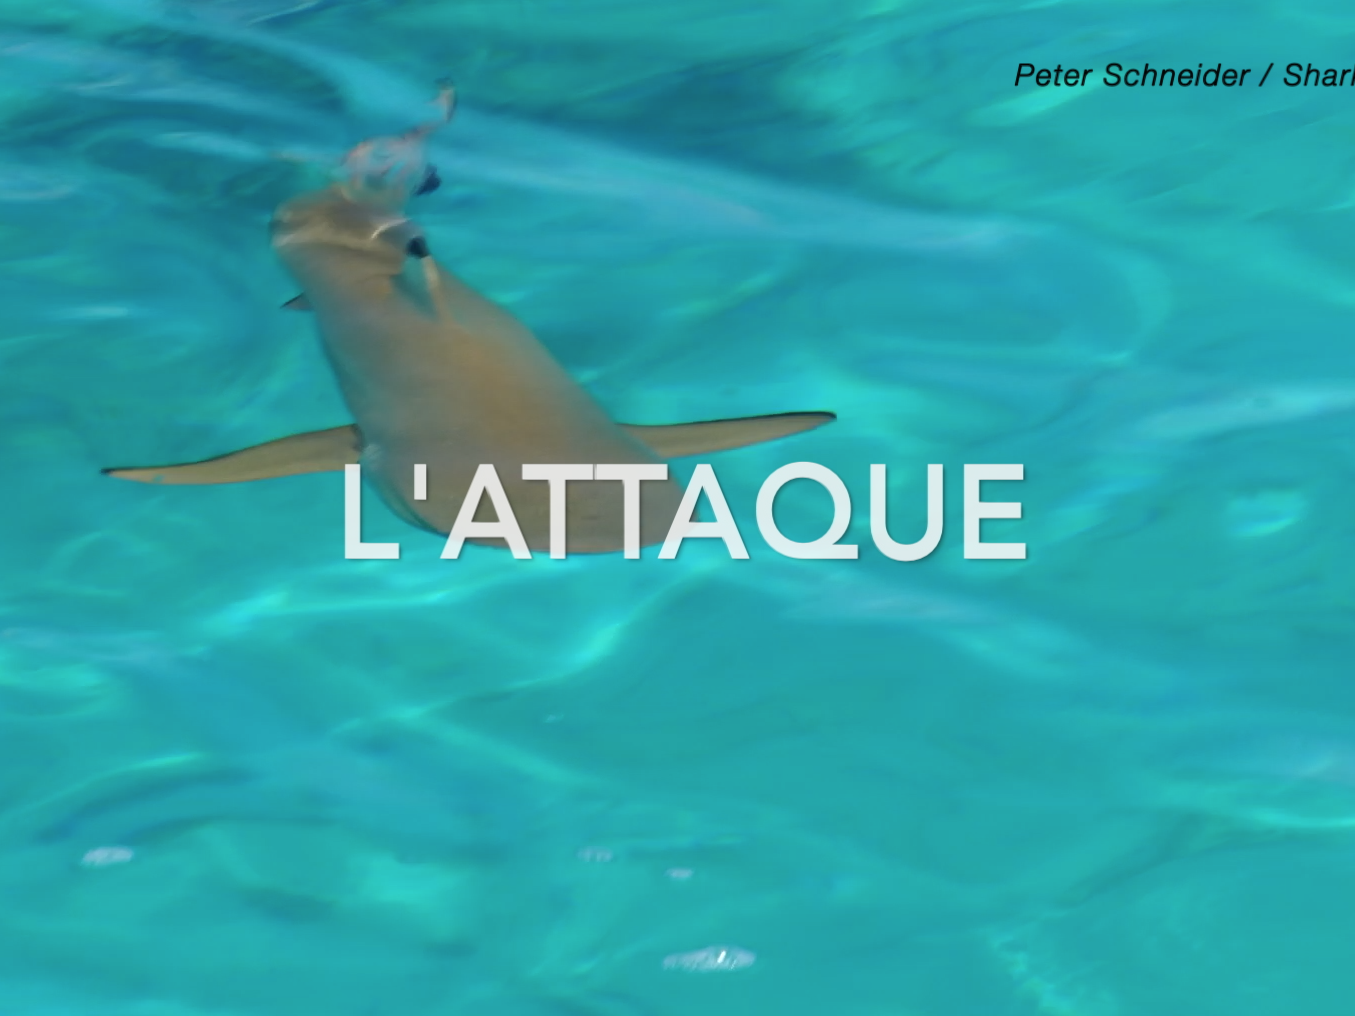 Attaque d'un requin filmée en direct!